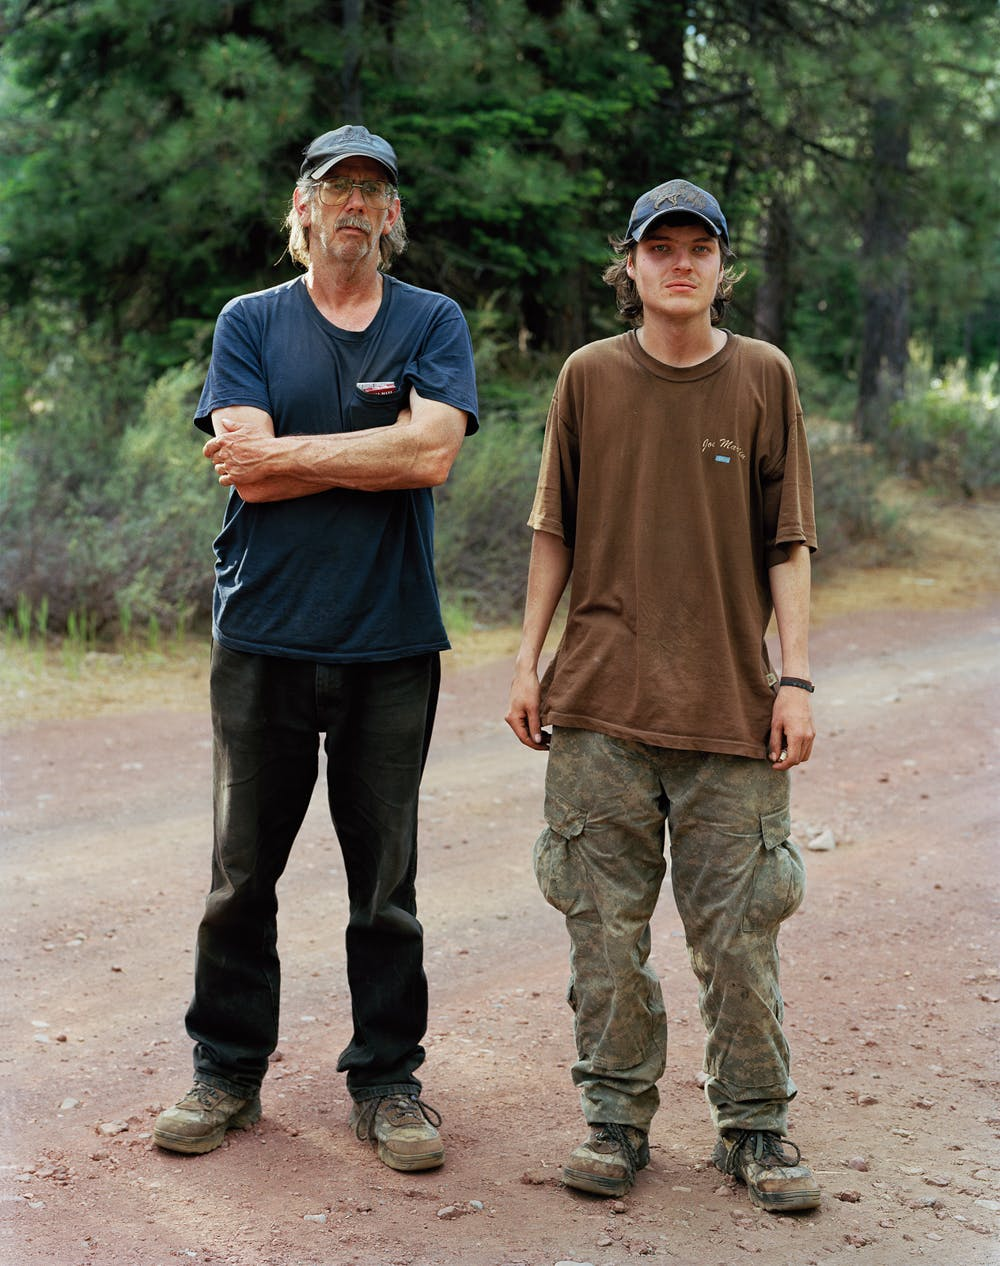 mushroom foraging 1300 per day erik johanson 36 of 42 These Bible Belt Christians Believe That Weed Is God's Perfect Medicine